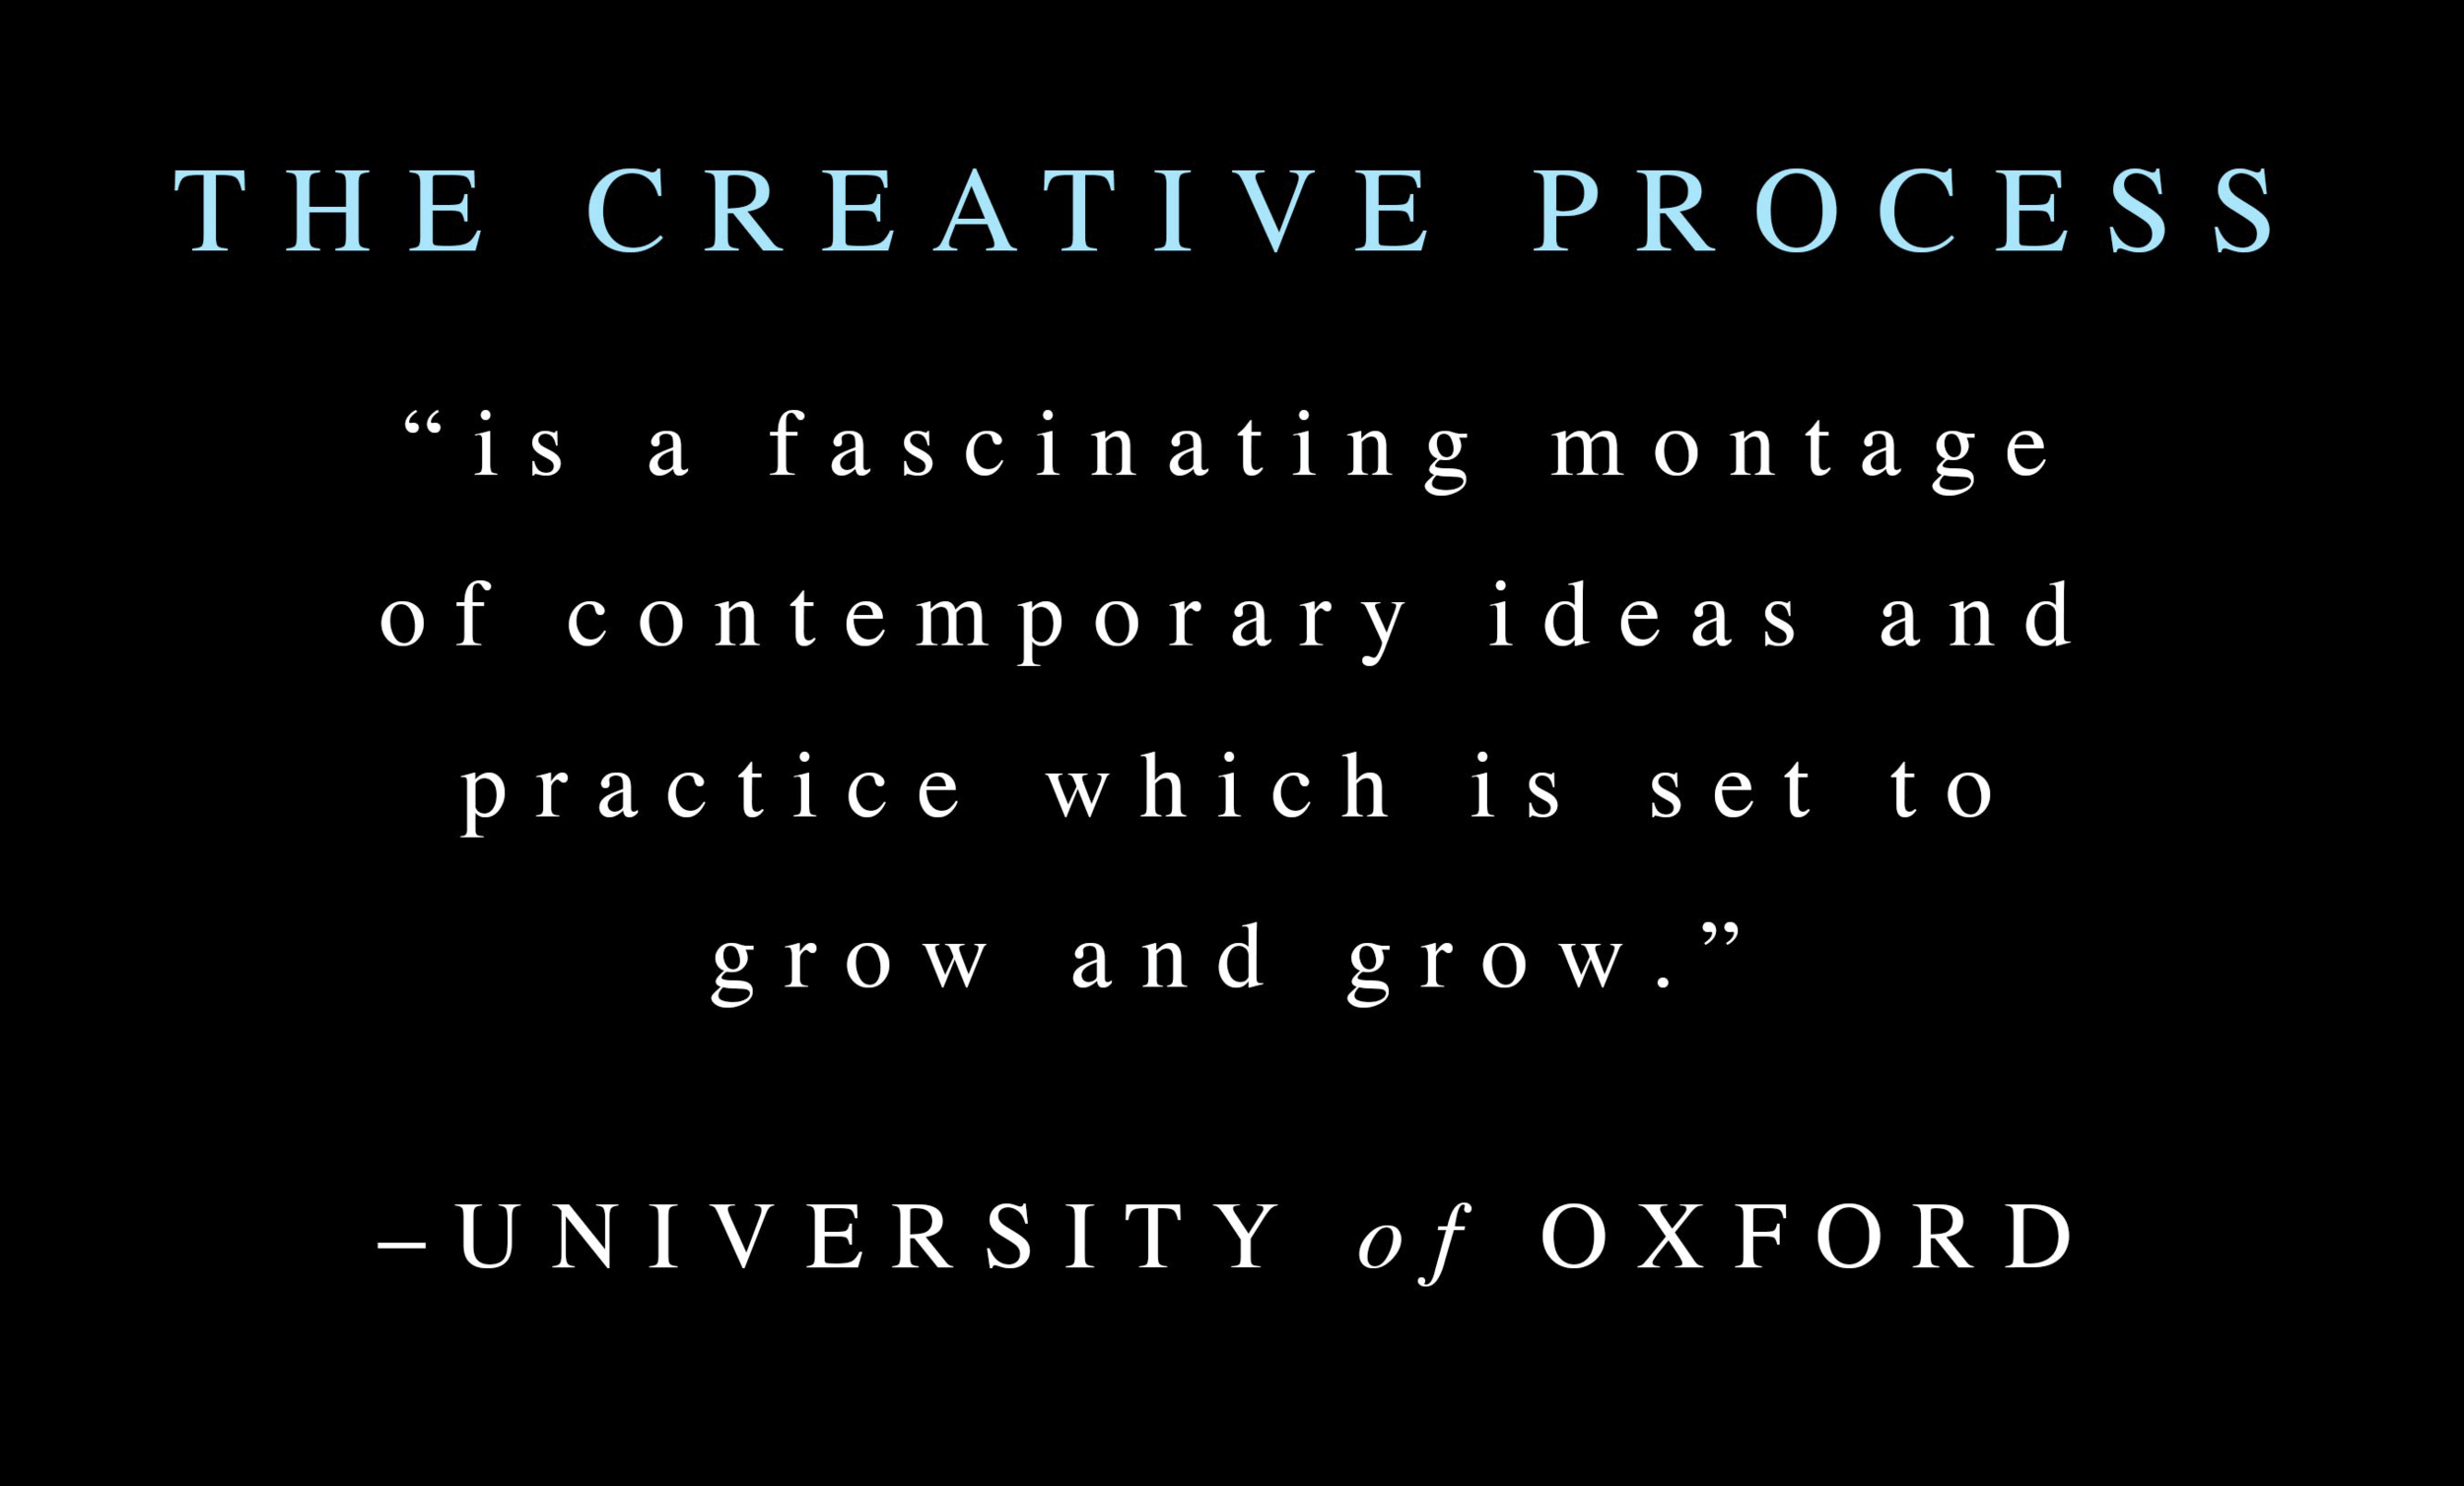 THE-CREATIVE-PROCESS-oxford.png